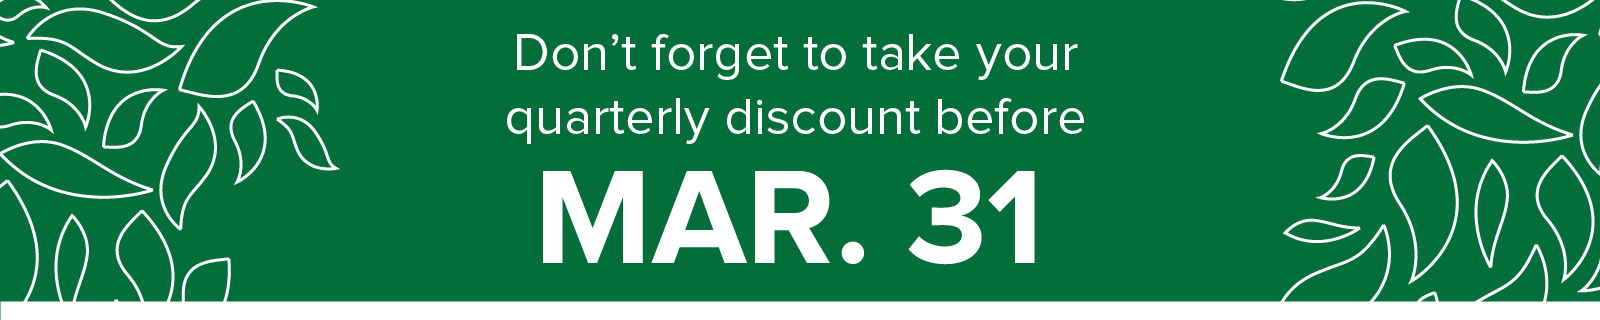 Use your quarterly owner discount by March 31